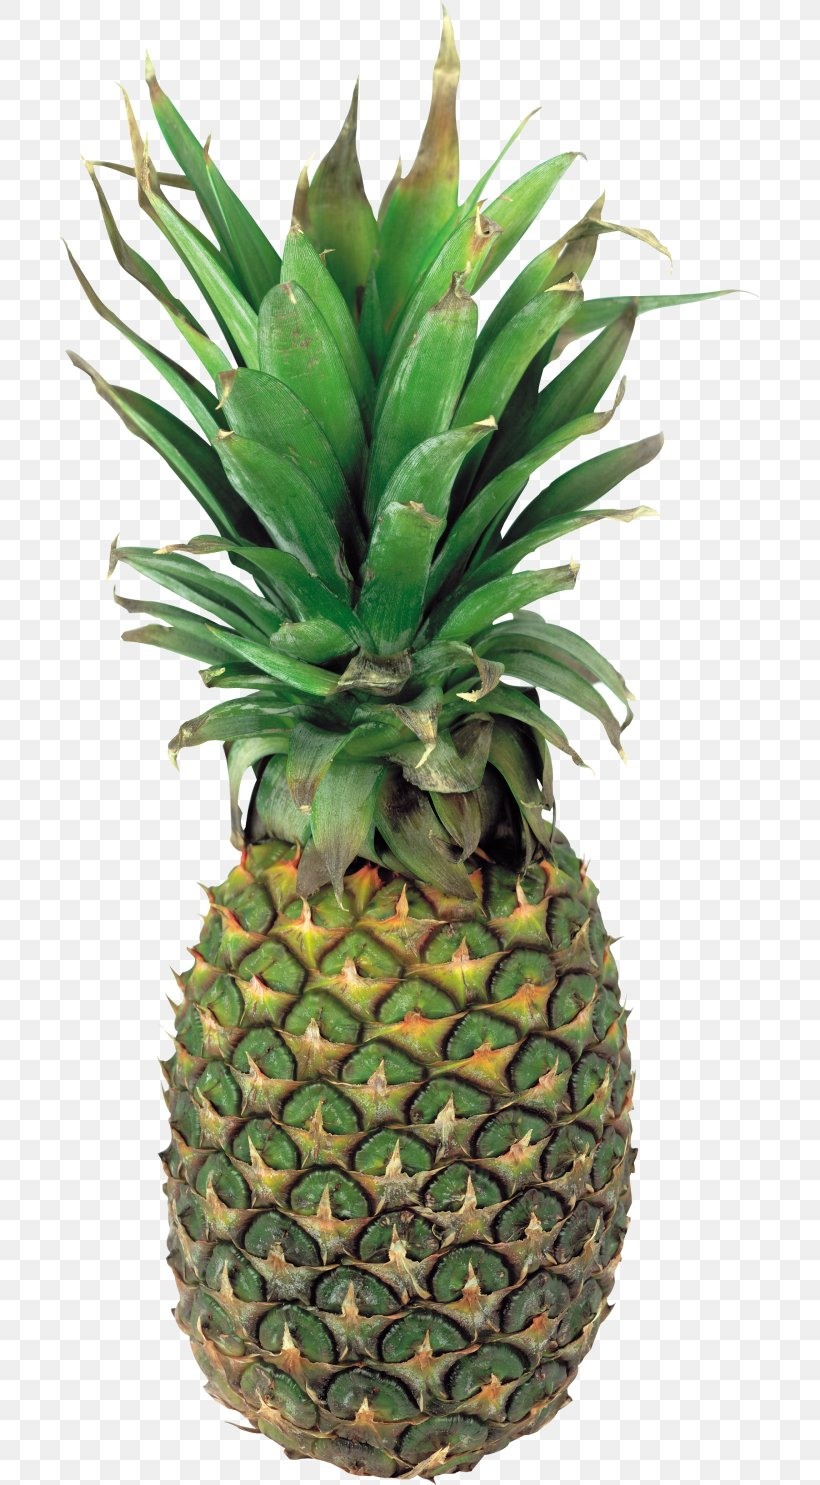 Pineapple Clip Art Juice Fruit, PNG, 700x1485px, Pineapple.